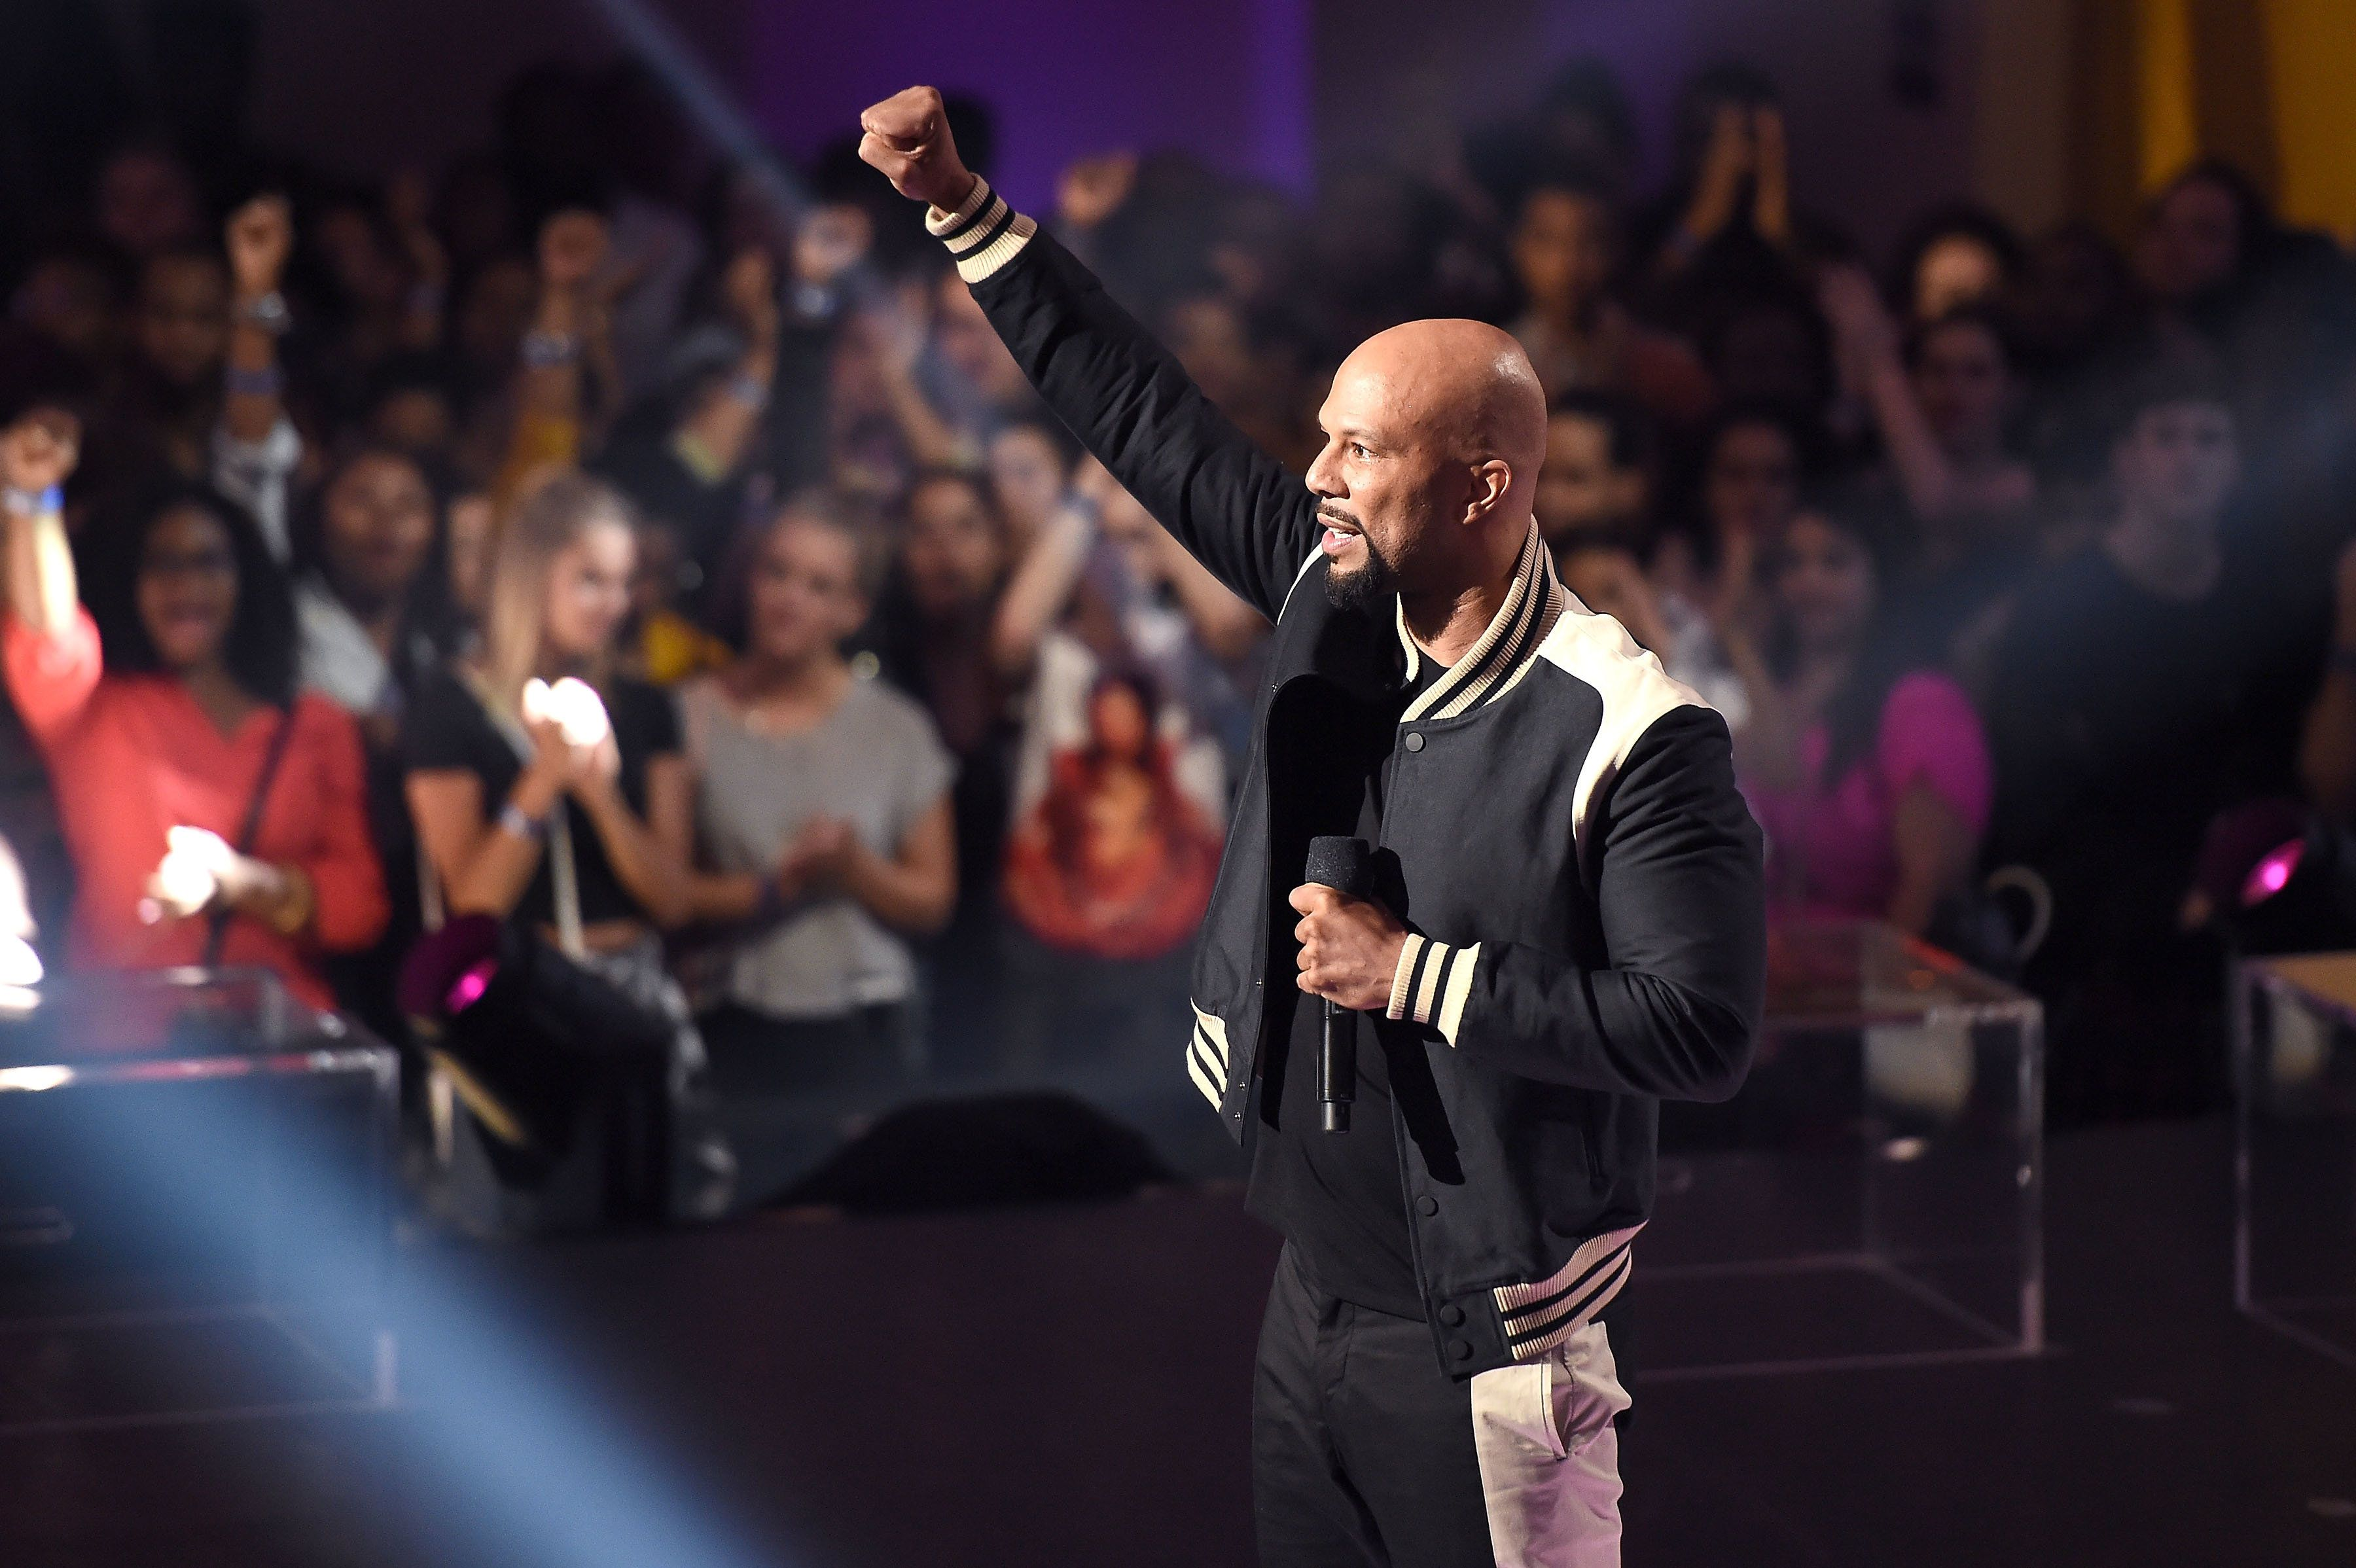 NEW YORK, NY - JULY 11:  Common performs onstage during the VH1 Hip Hop Honors: All Hail The Queens at David Geffen Hall on July 11, 2016 in New York City.  (Photo by Nicholas Hunt/Getty Images for VH1)